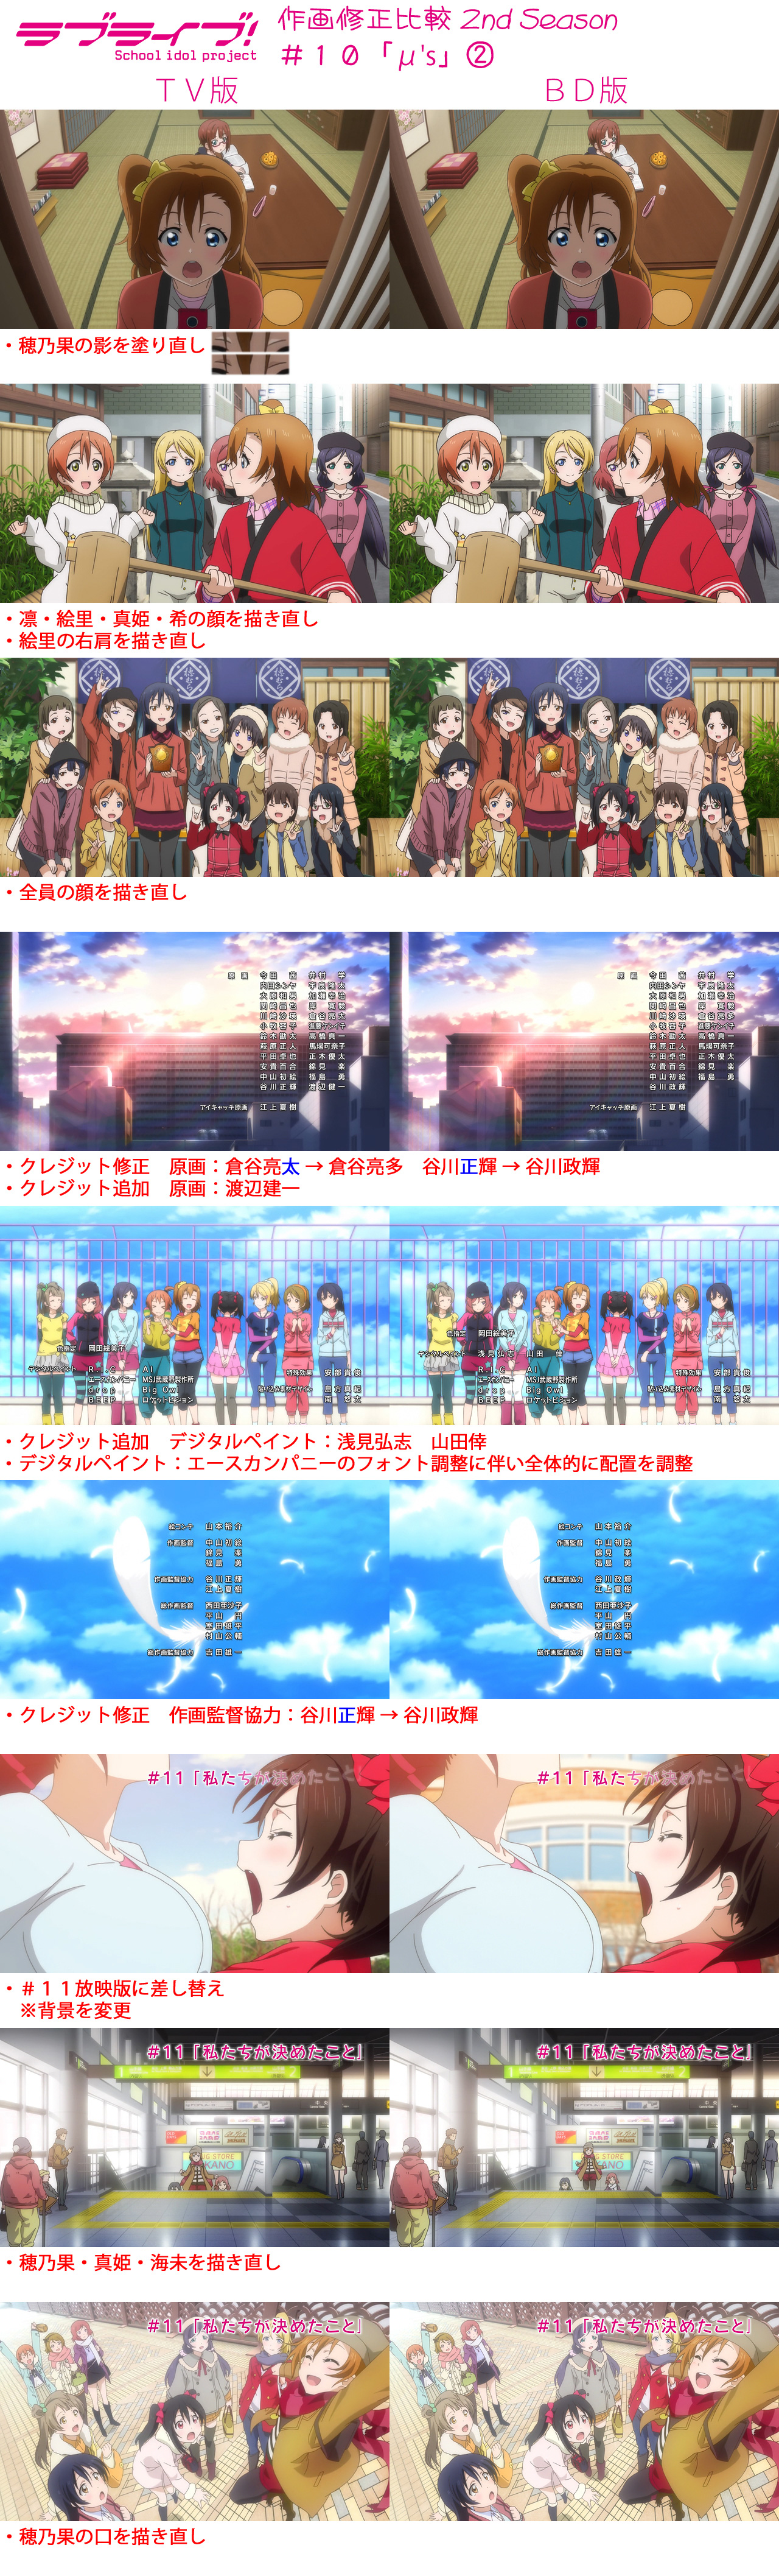 Love-Live!-School-Idol-Project-Season-2-TV-Blu-Ray-Comparison-Episode-10-Part-2